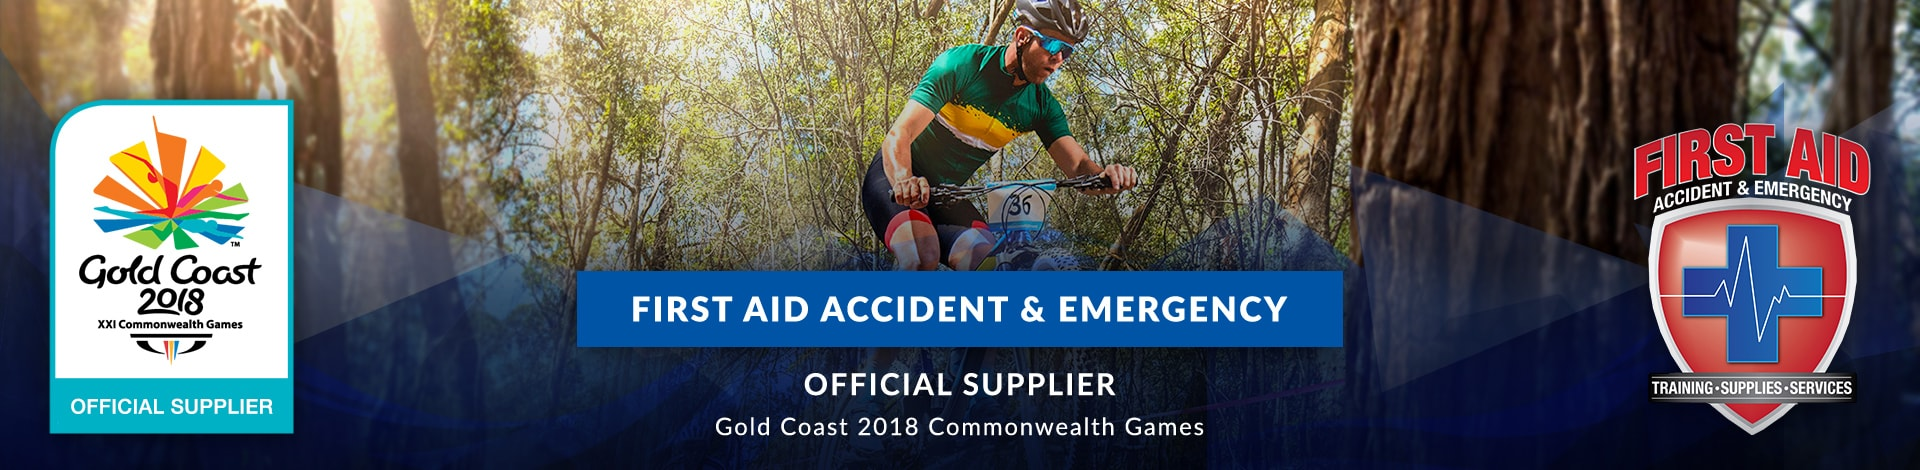 commonwealth games 2018 supplier